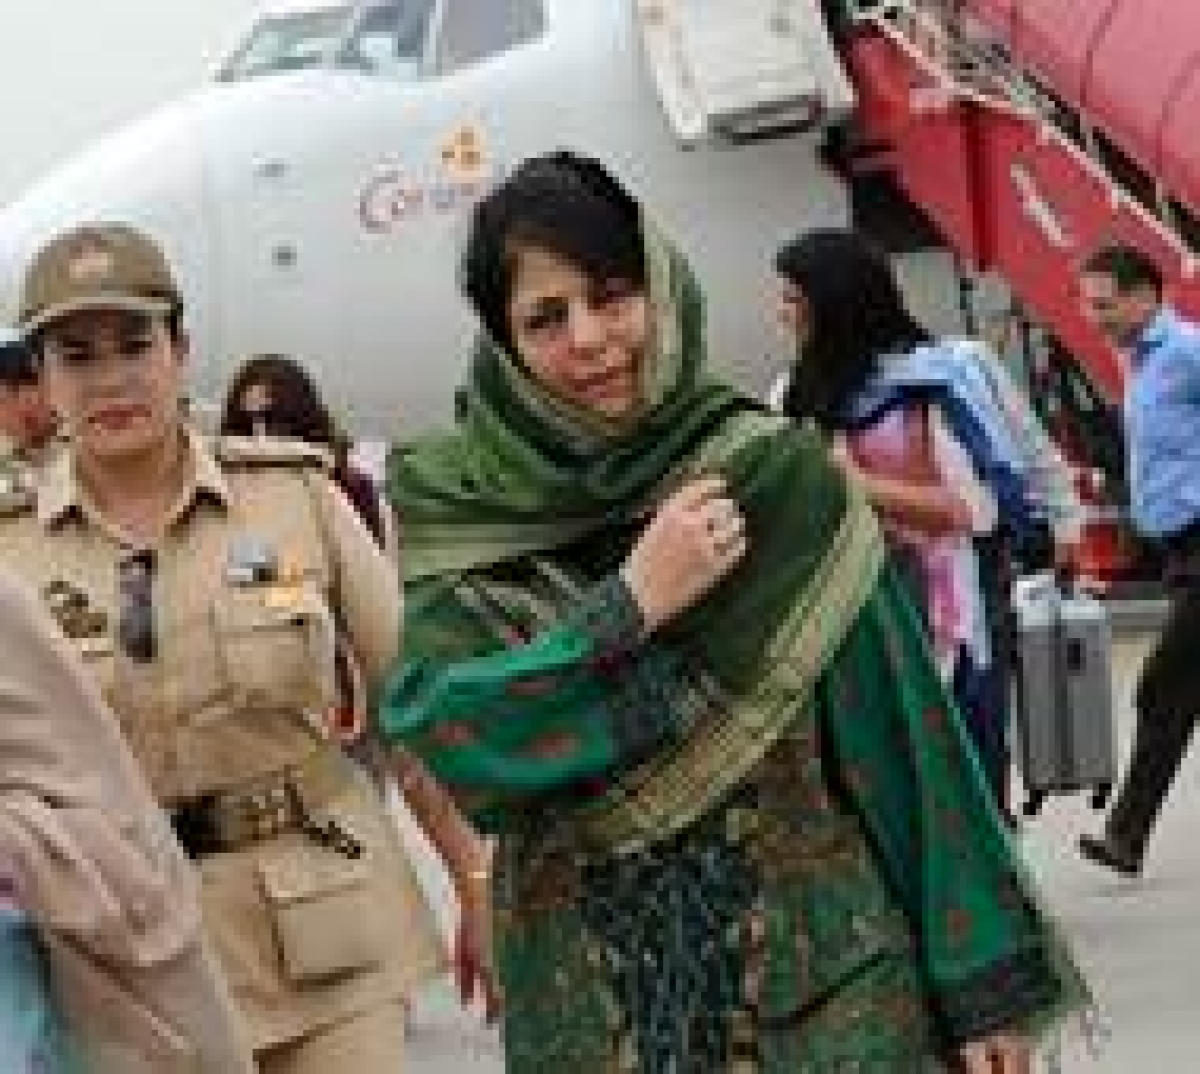 Mehbooba Mufti takes oath as first woman CM of J-K